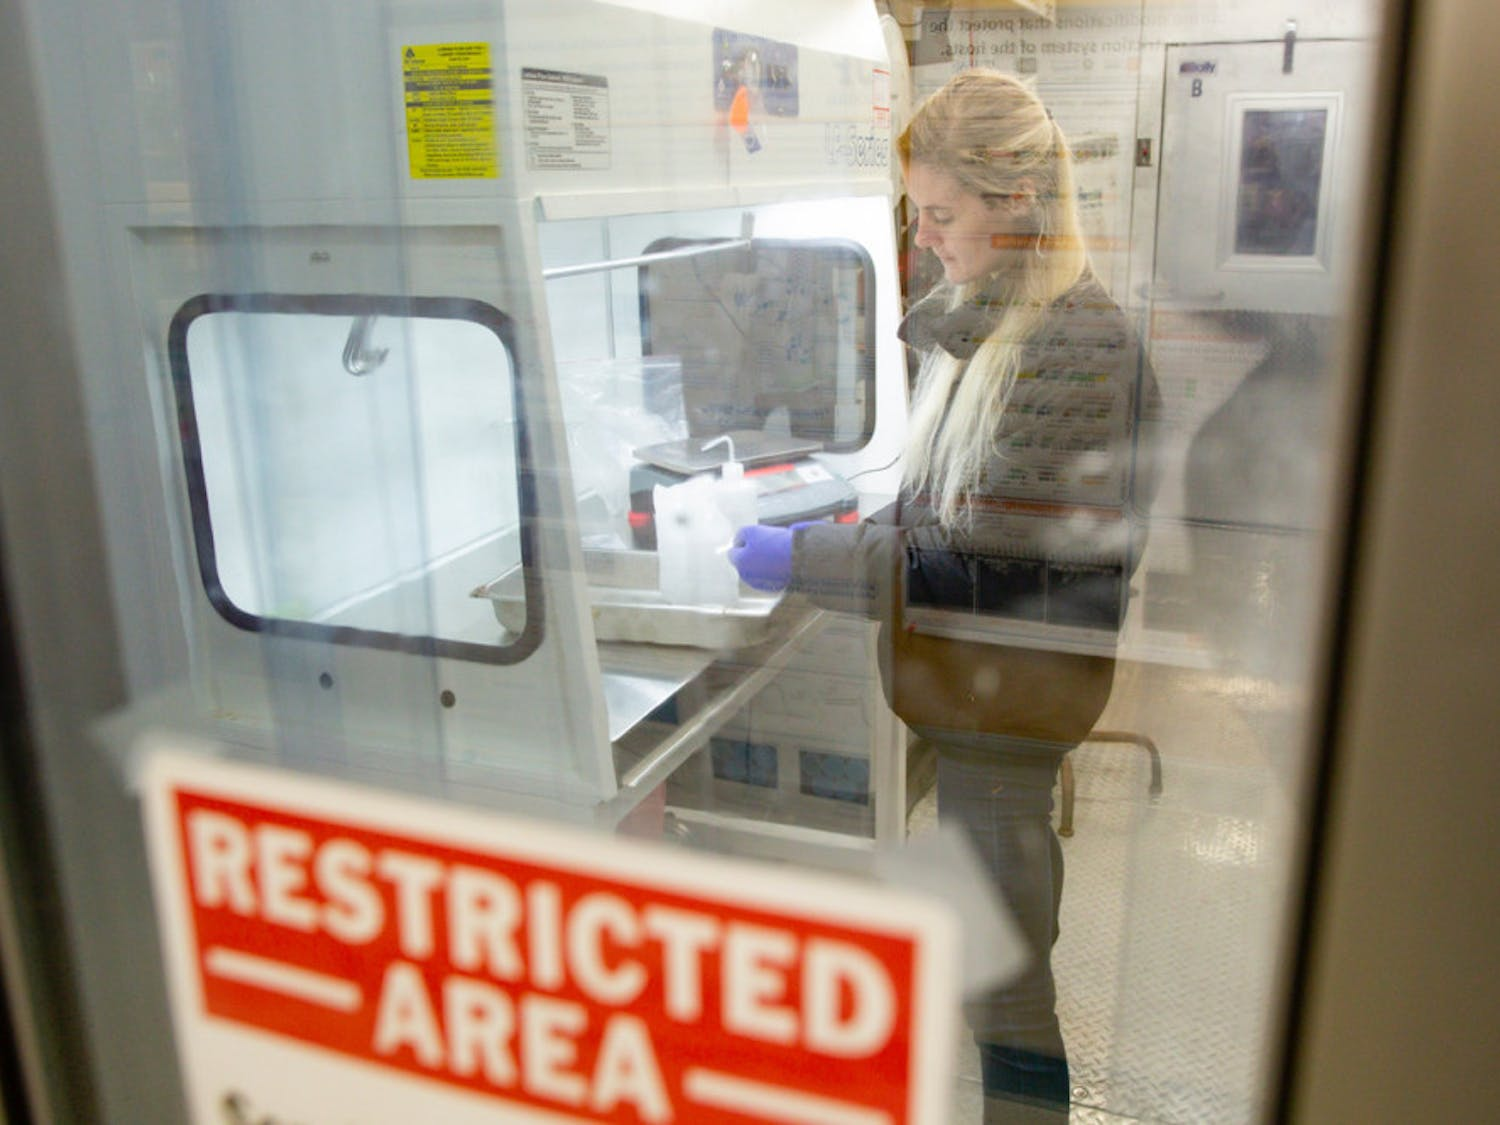 Christina Davis working in a microbiology and cell science lab in preparation for field work in Antarctica on Tuesday, November 20th, 2018.